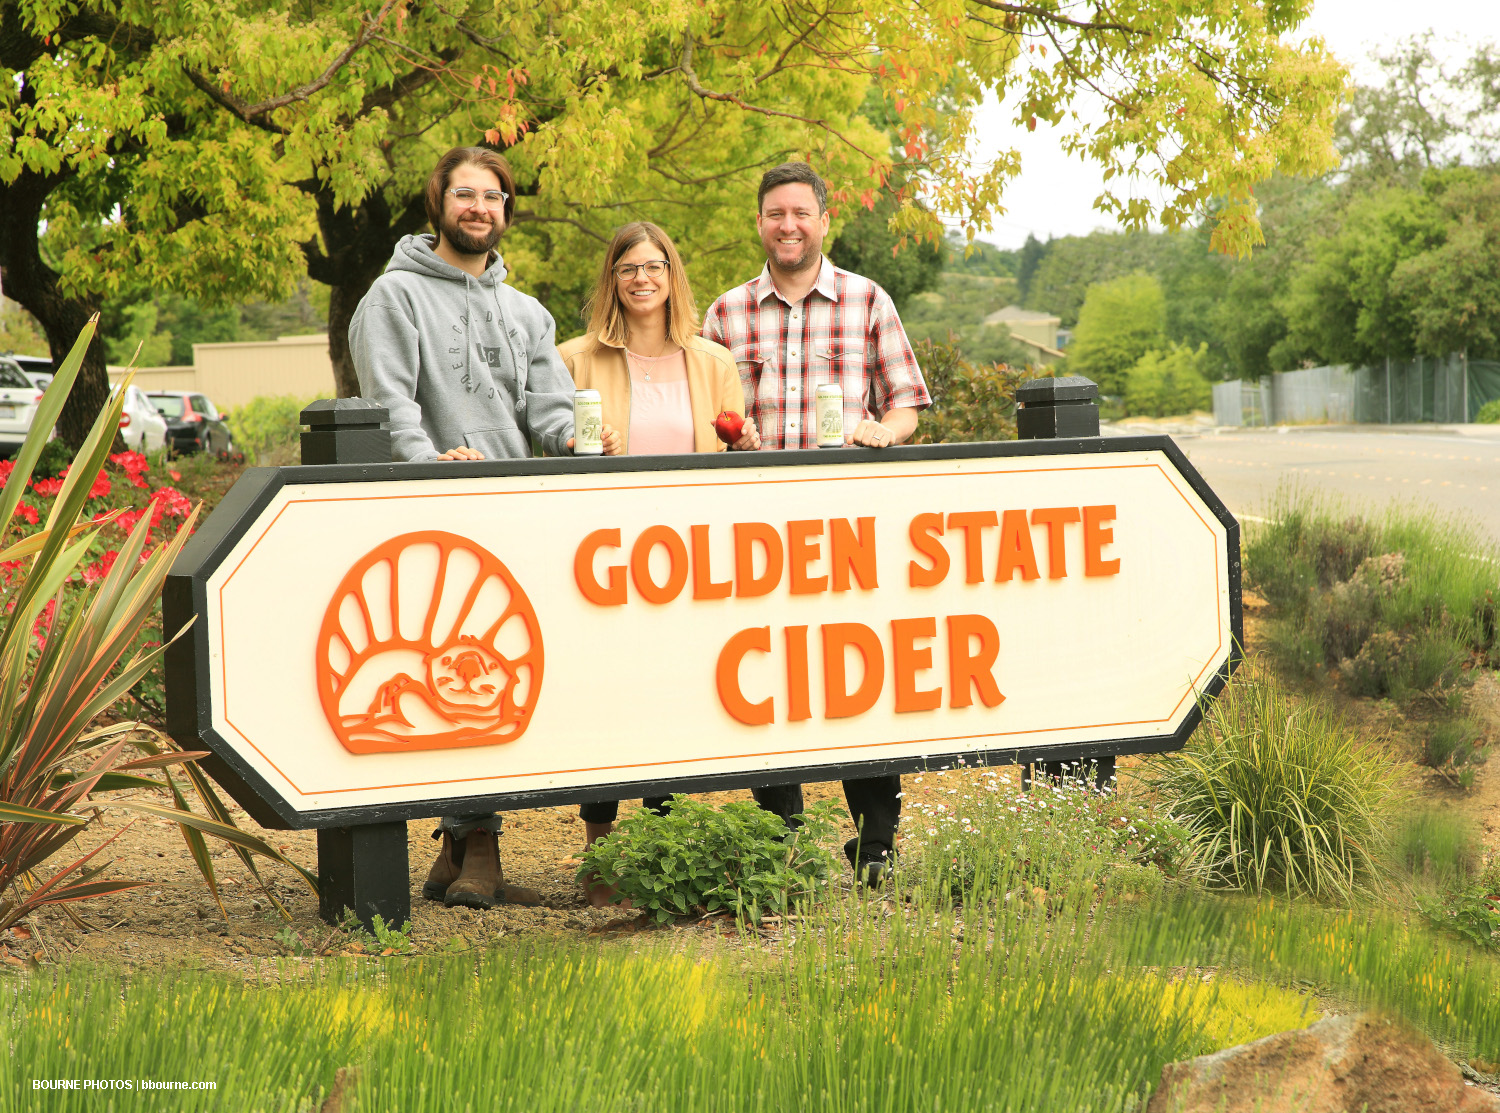 three people standing behind business sign that says golden state cider with a picture of an otter.